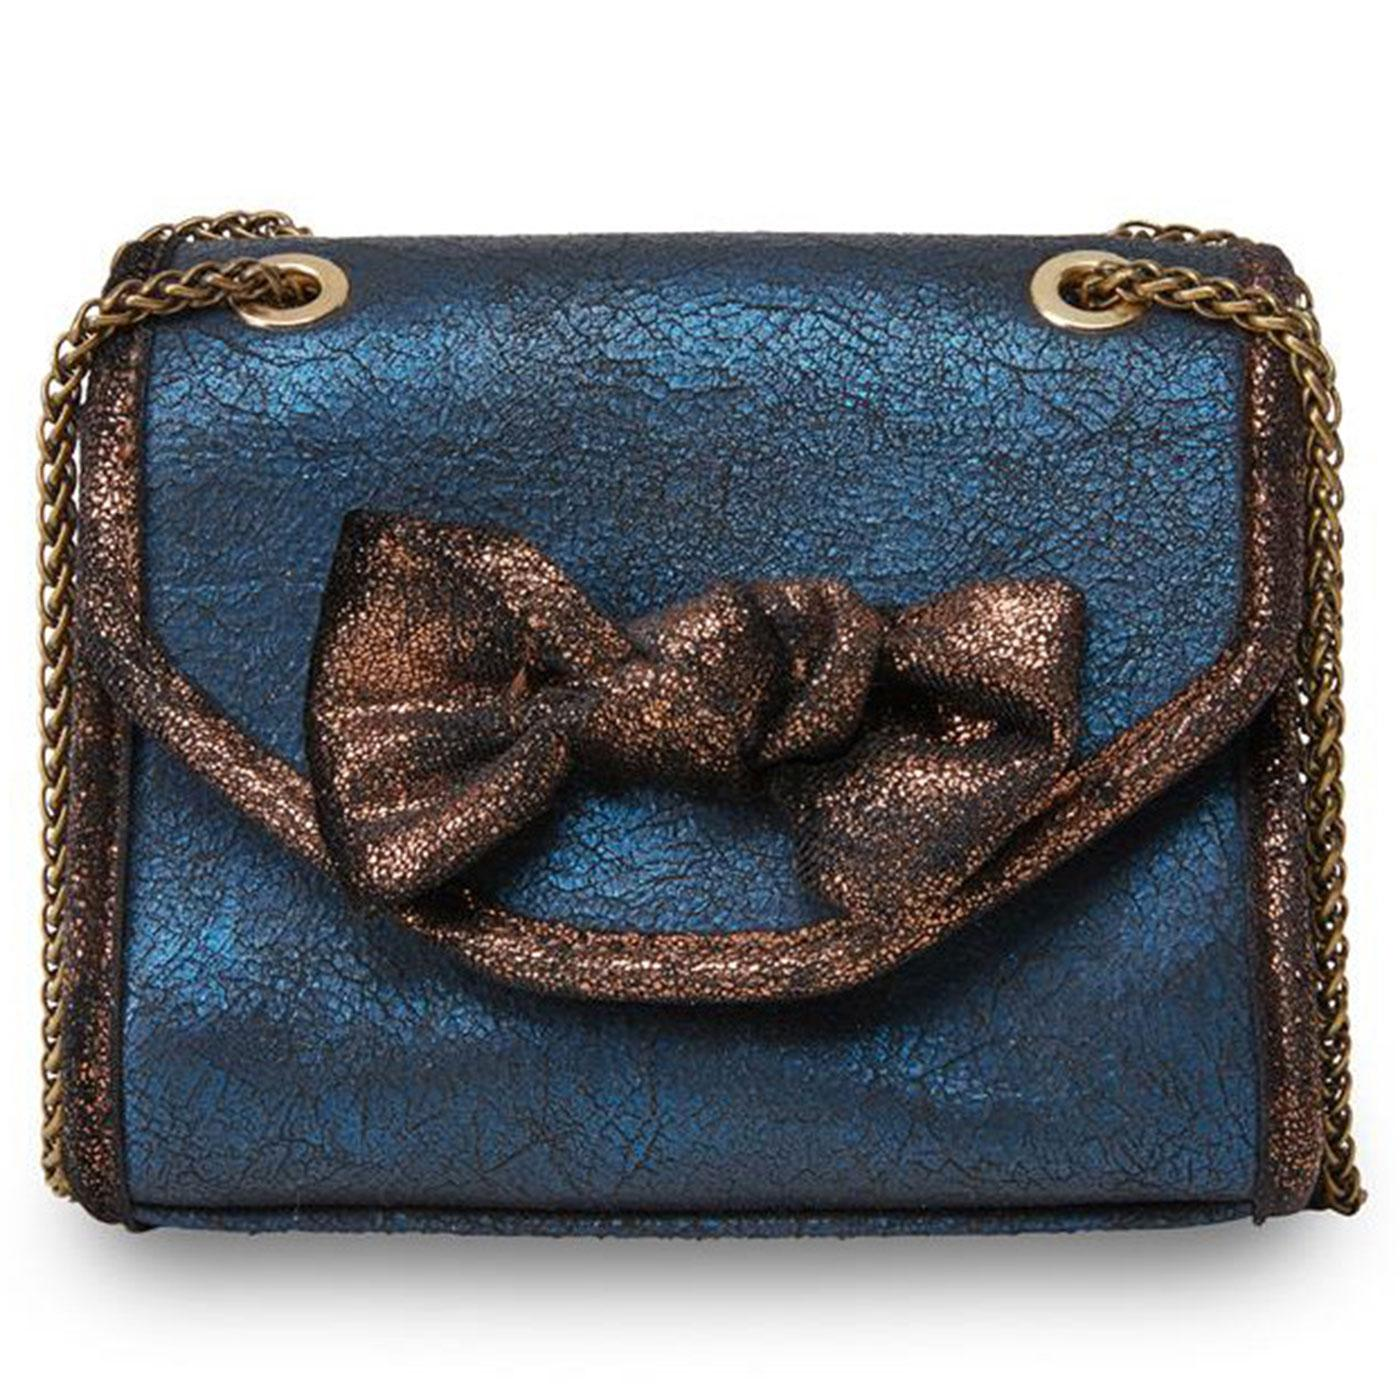 Jezabel JOE BROWNS Vintage Metallic Bow Handbag